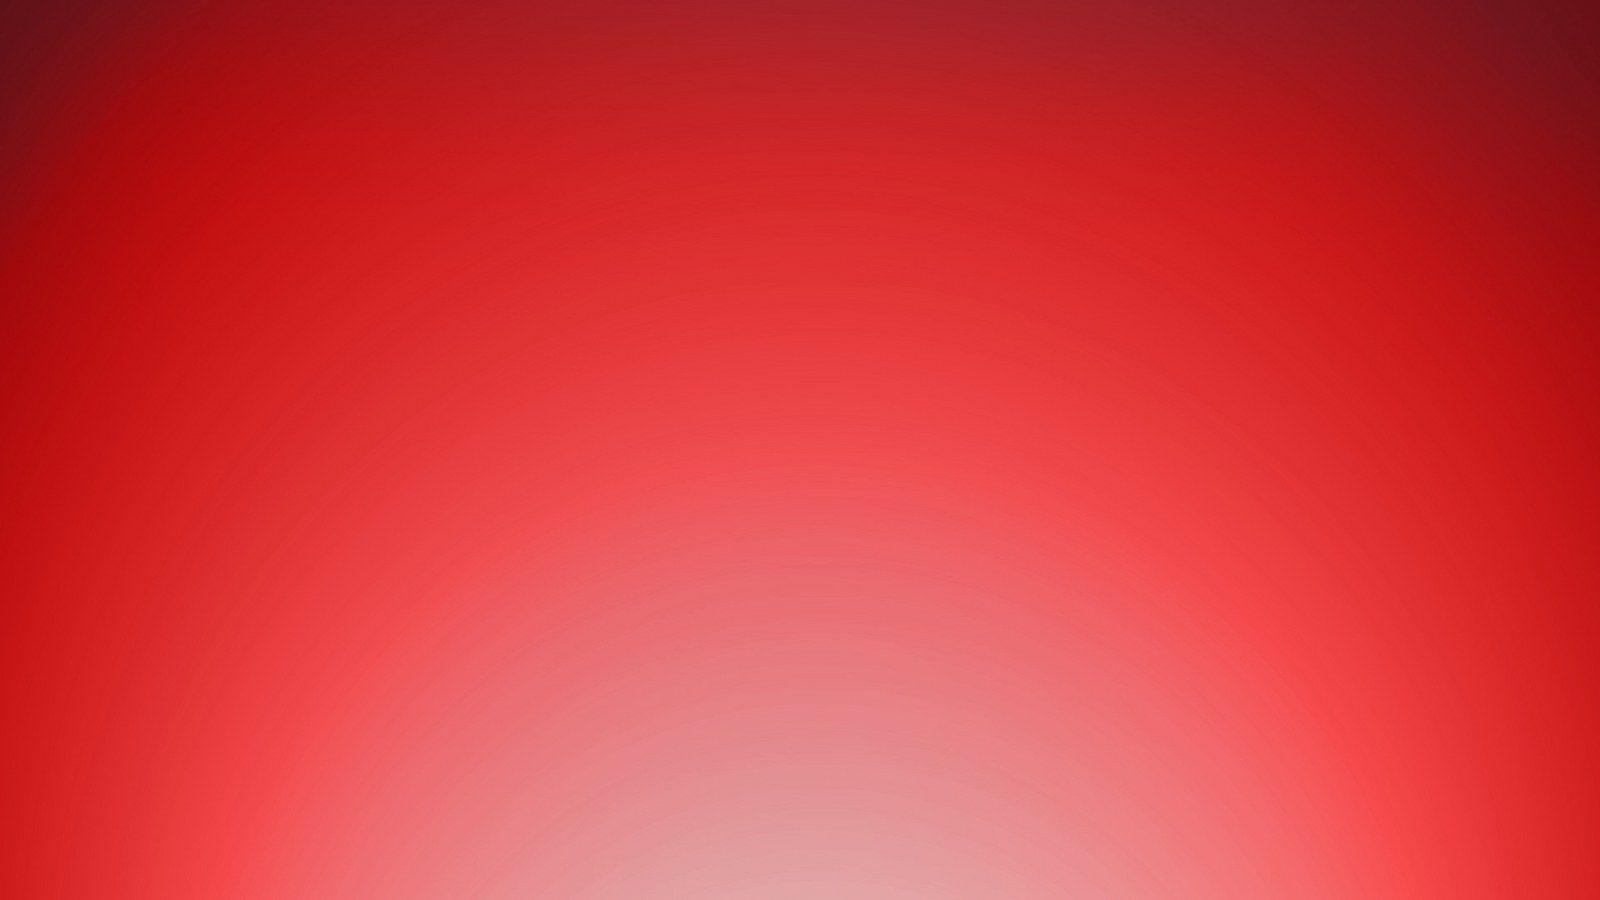 Red Backgrounds Pictures - Wallpaper Cave